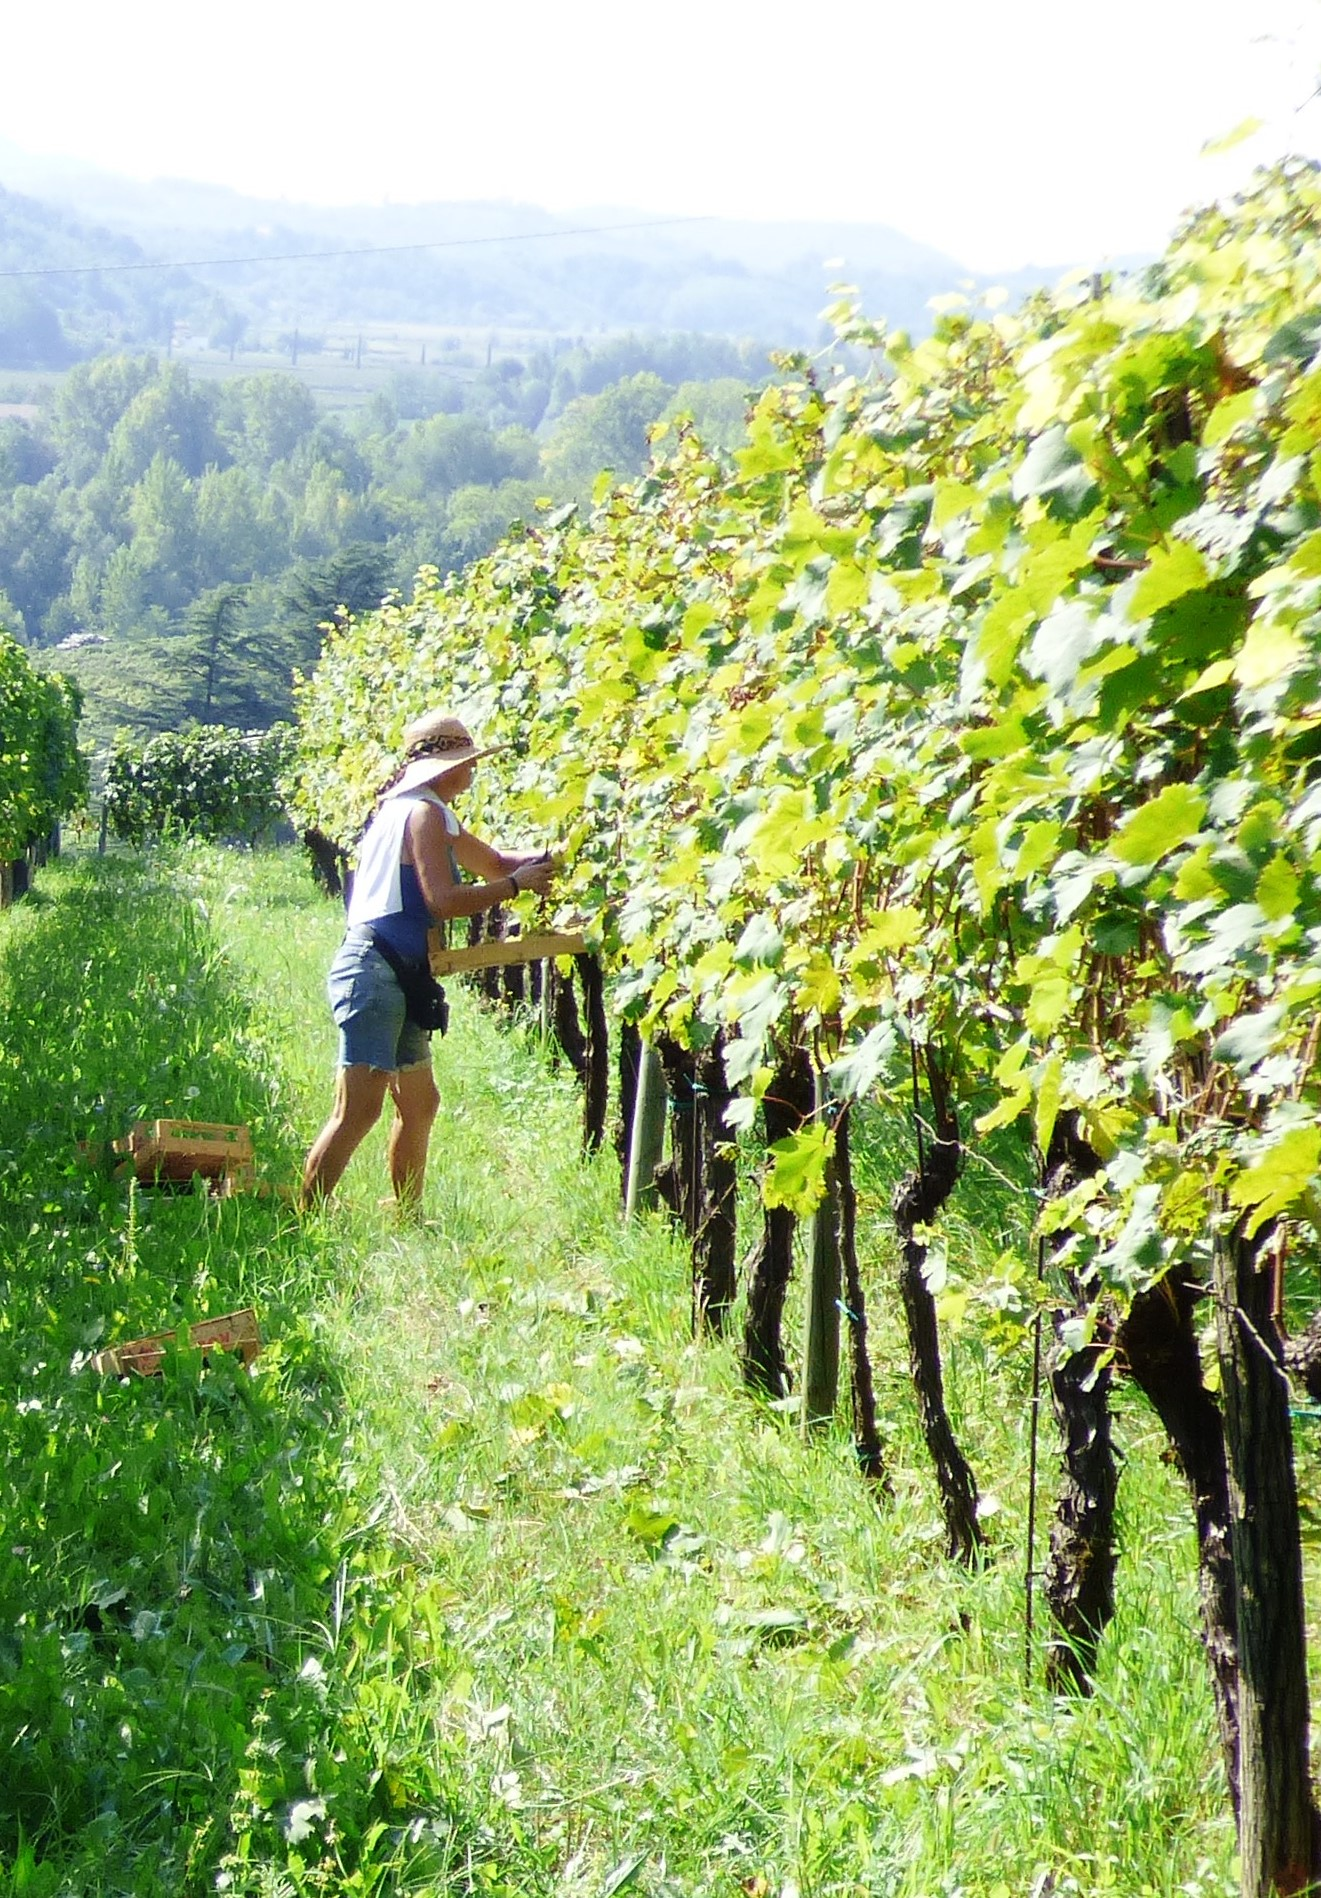 After retiring as a school teacher, Hilde Petrussa took over Vigna Petrussa from her mother in the vineyard and the cellar. She makes gorgeous wines with a personal touch in the north east italian region, Friuli Venezia Giulia.